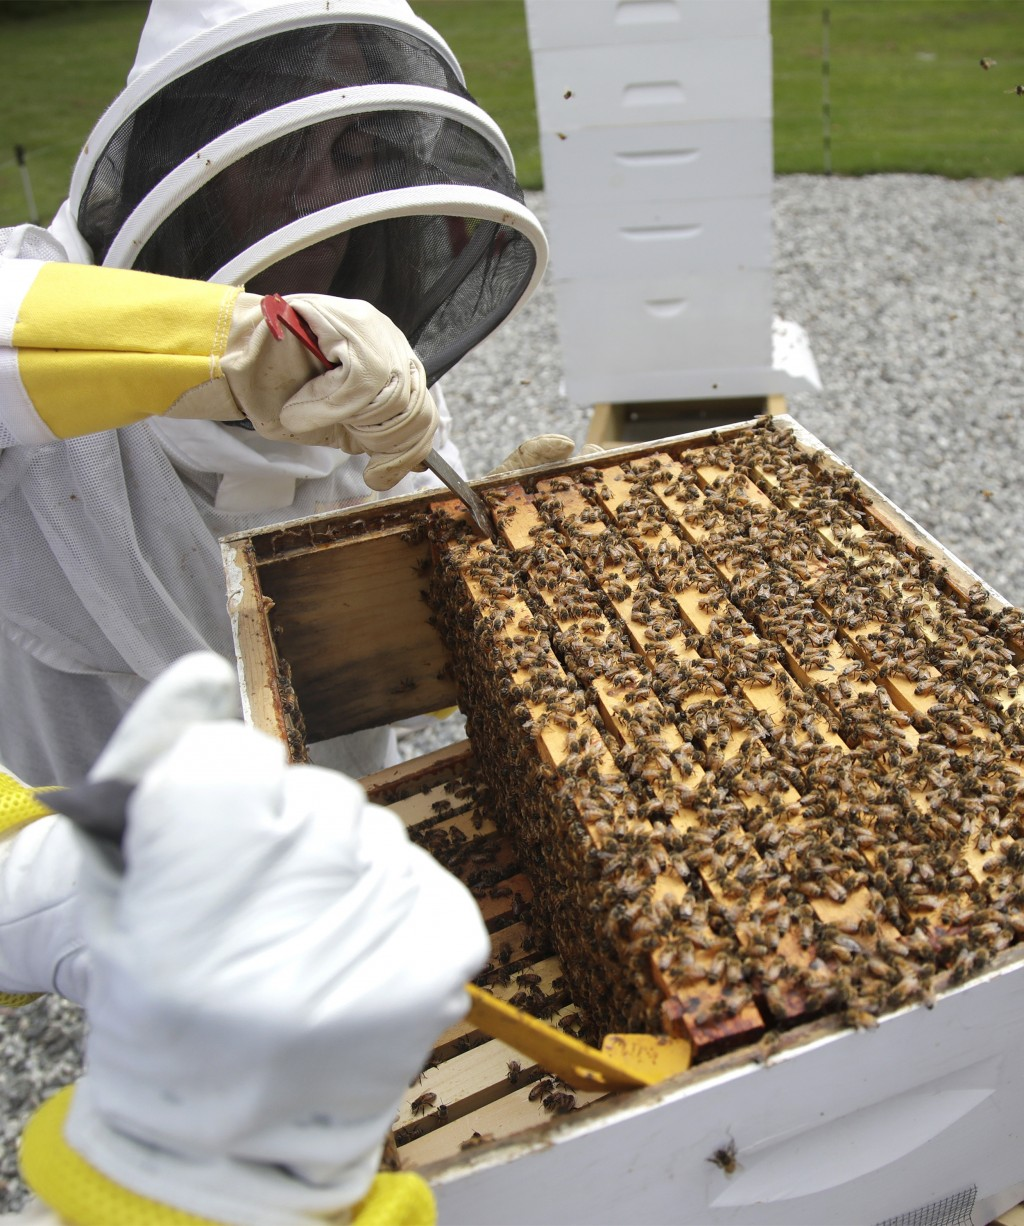 In this Aug. 7, 2019 photo, U.S. Army veteran Wendi Zimmermann uses a tool to slide up a frame of bees to check them for disease and food supply at th